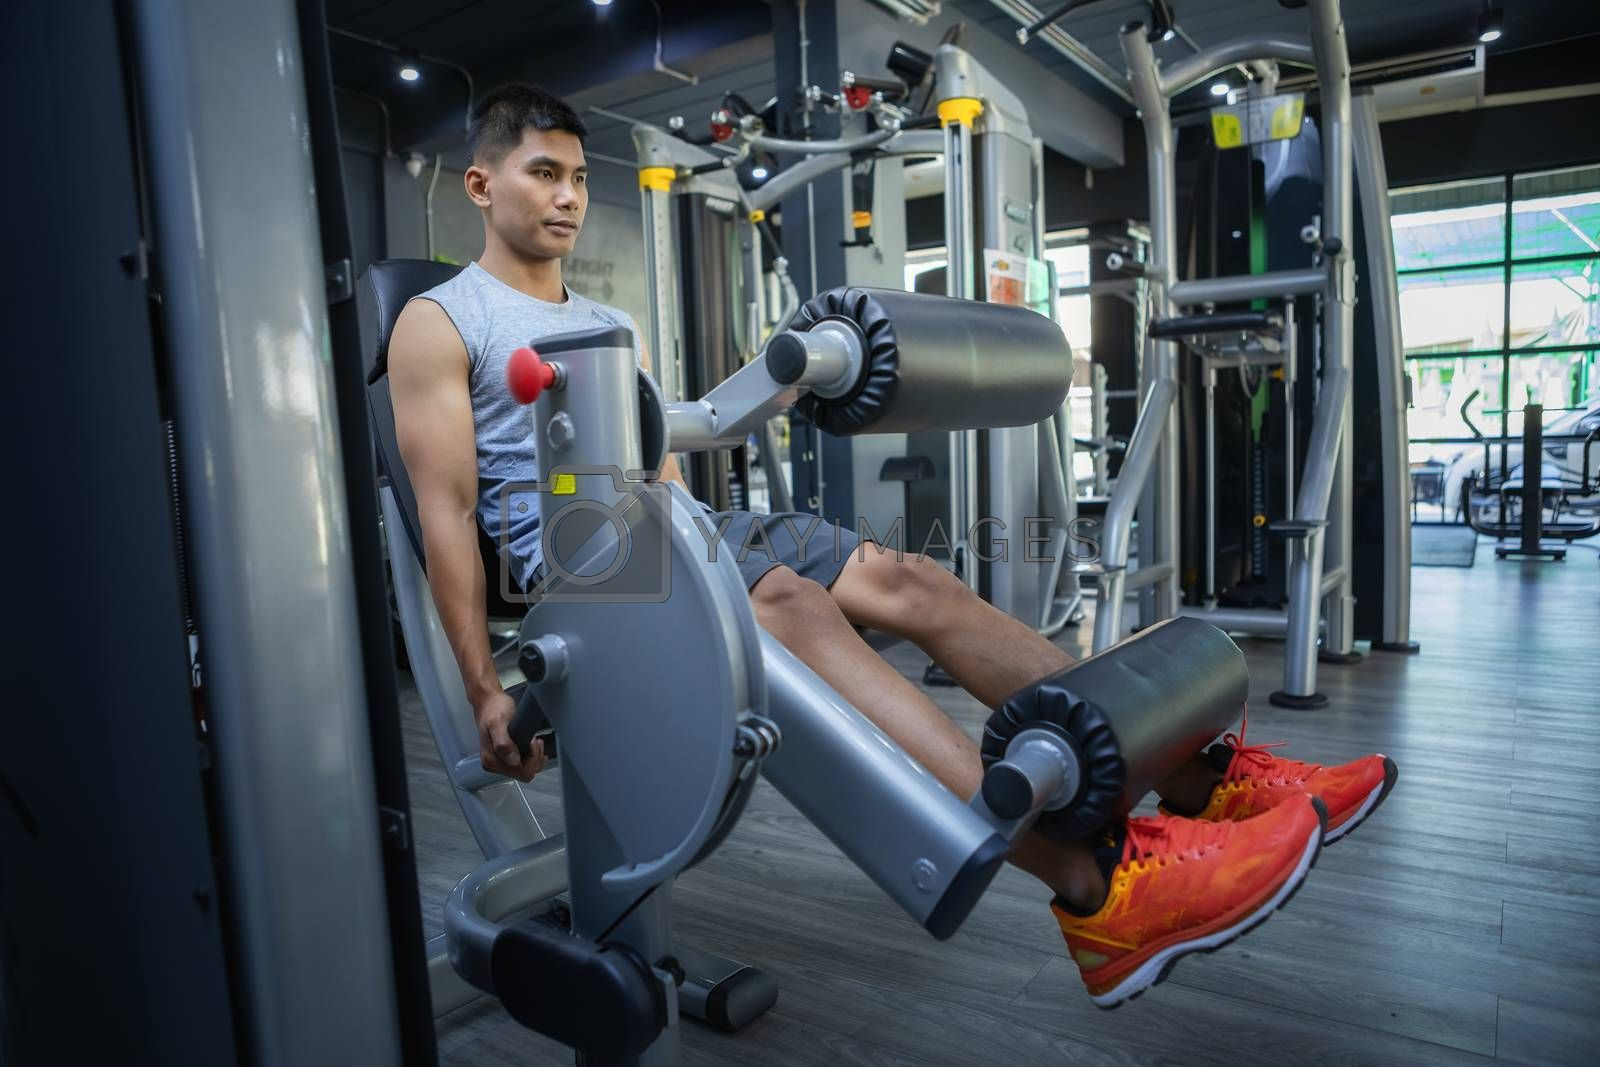 Young sporty man and woman training in modern gym. Gym exercise and workout concept